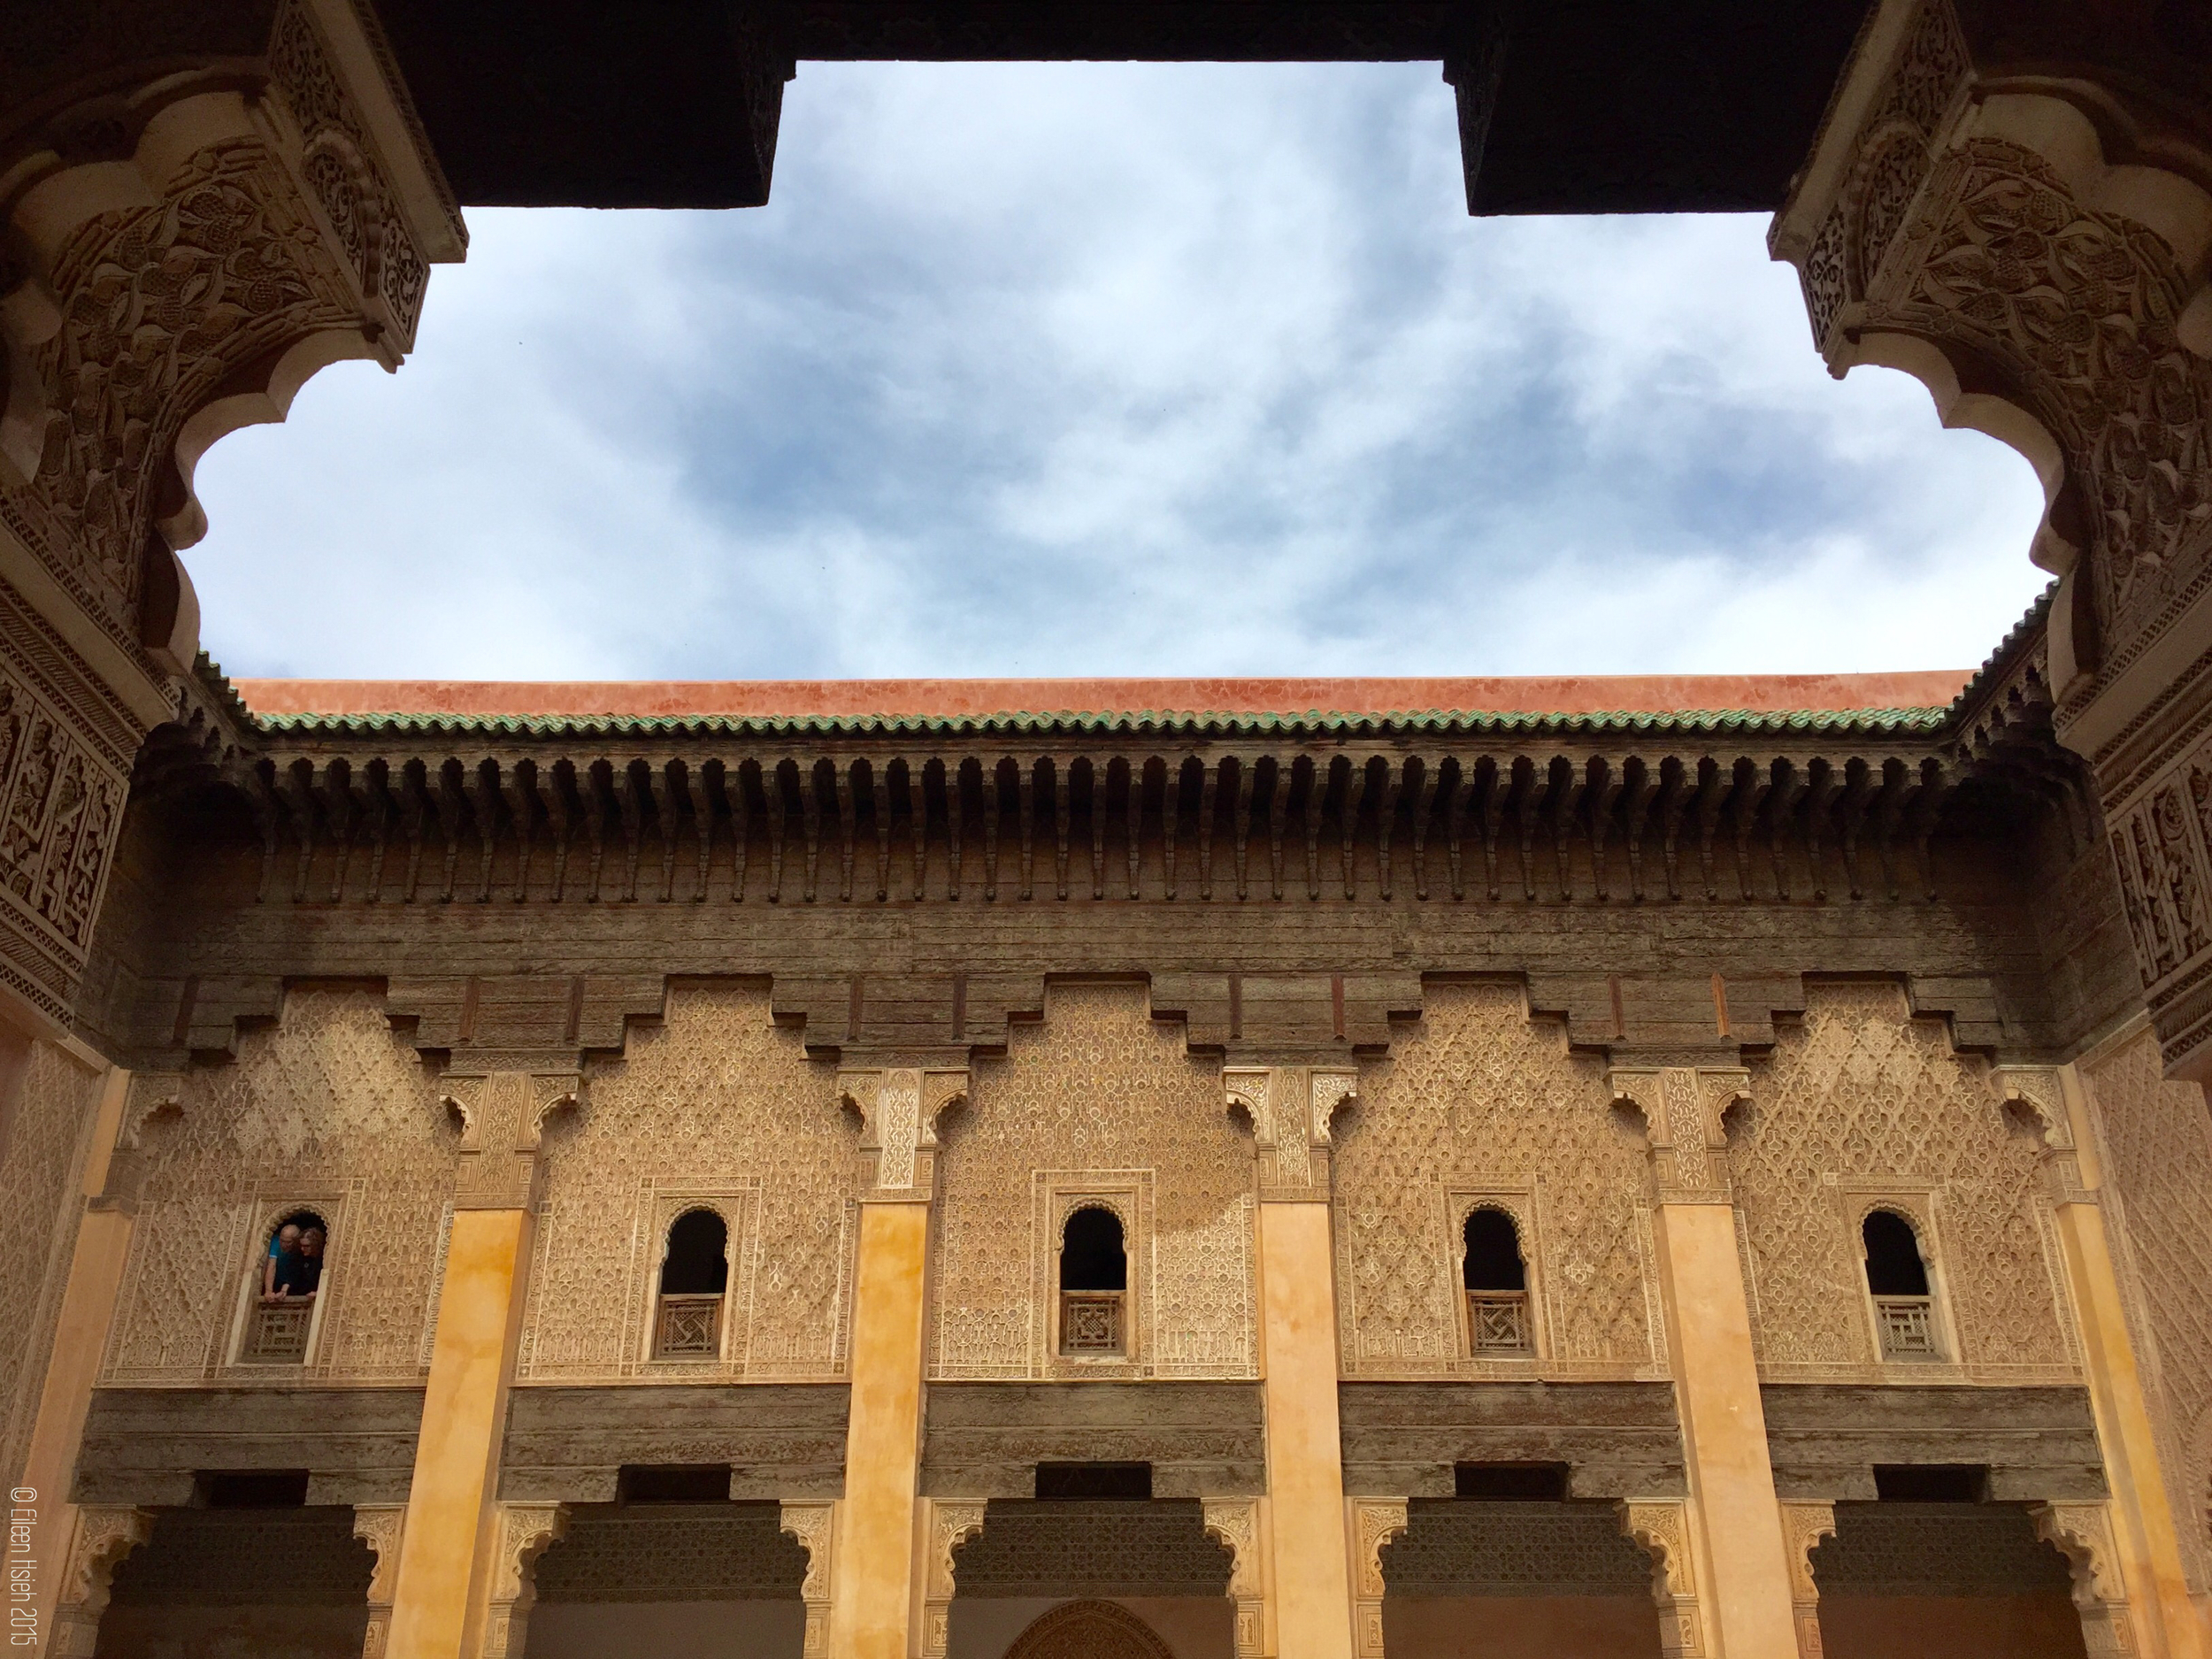 Founded in the 14th century, the Ben Youssef Madrasa in Marrakech had taught Islam to countless pupils until its closure in the 1960s.於14世紀建立的Ben Youssef Madrasa,一直是北非數一數二的  伊斯蘭神  學院,直到1960年代才停止教學。